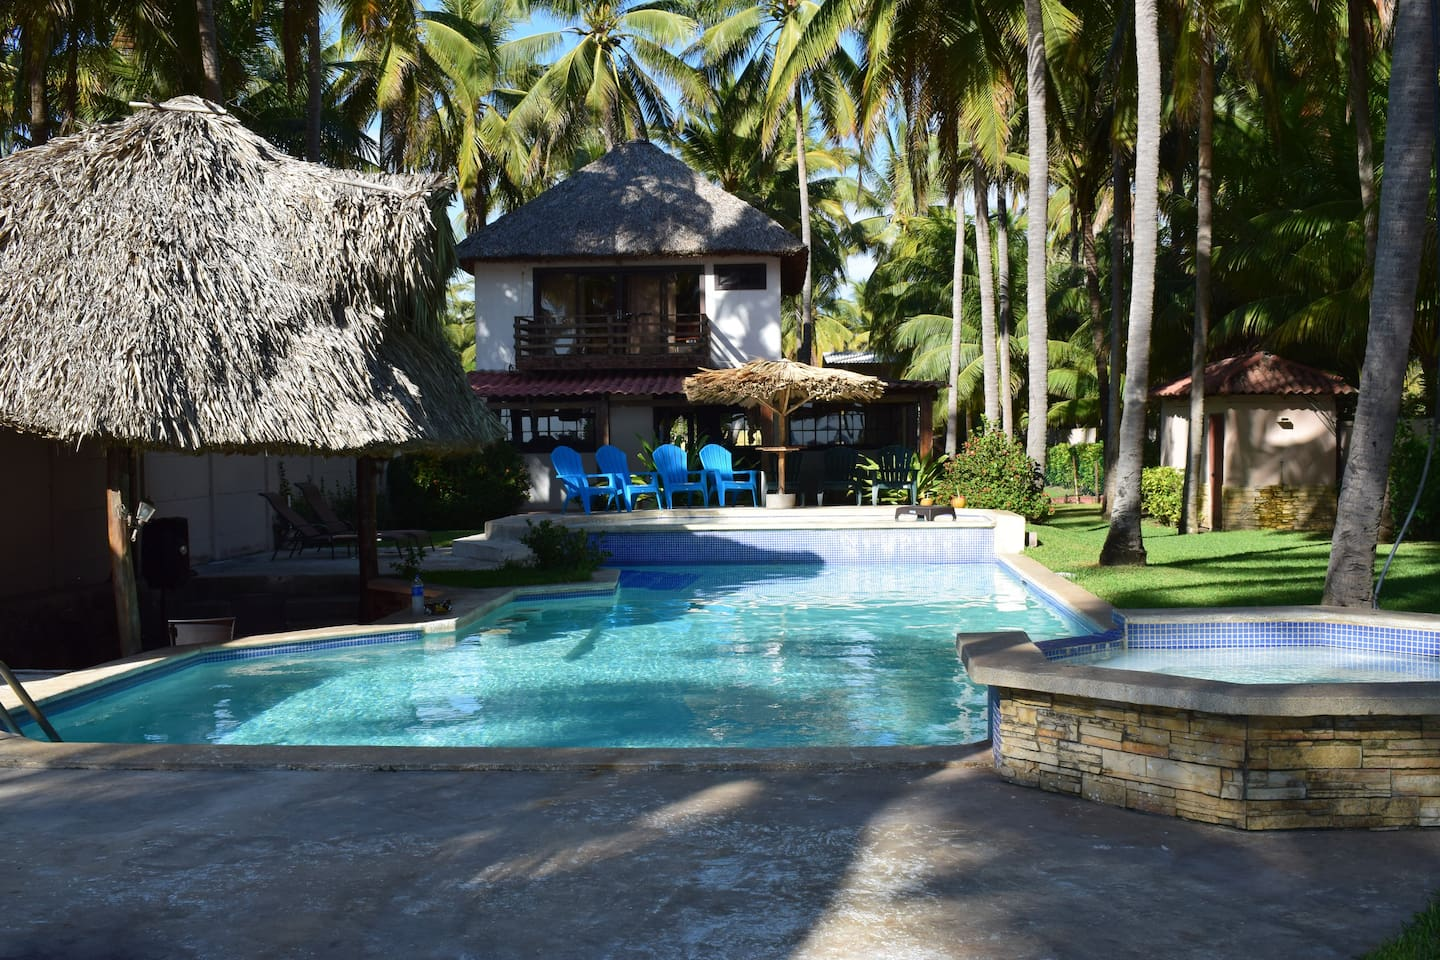 Front view of the house and Jacuzzi/Pool area.